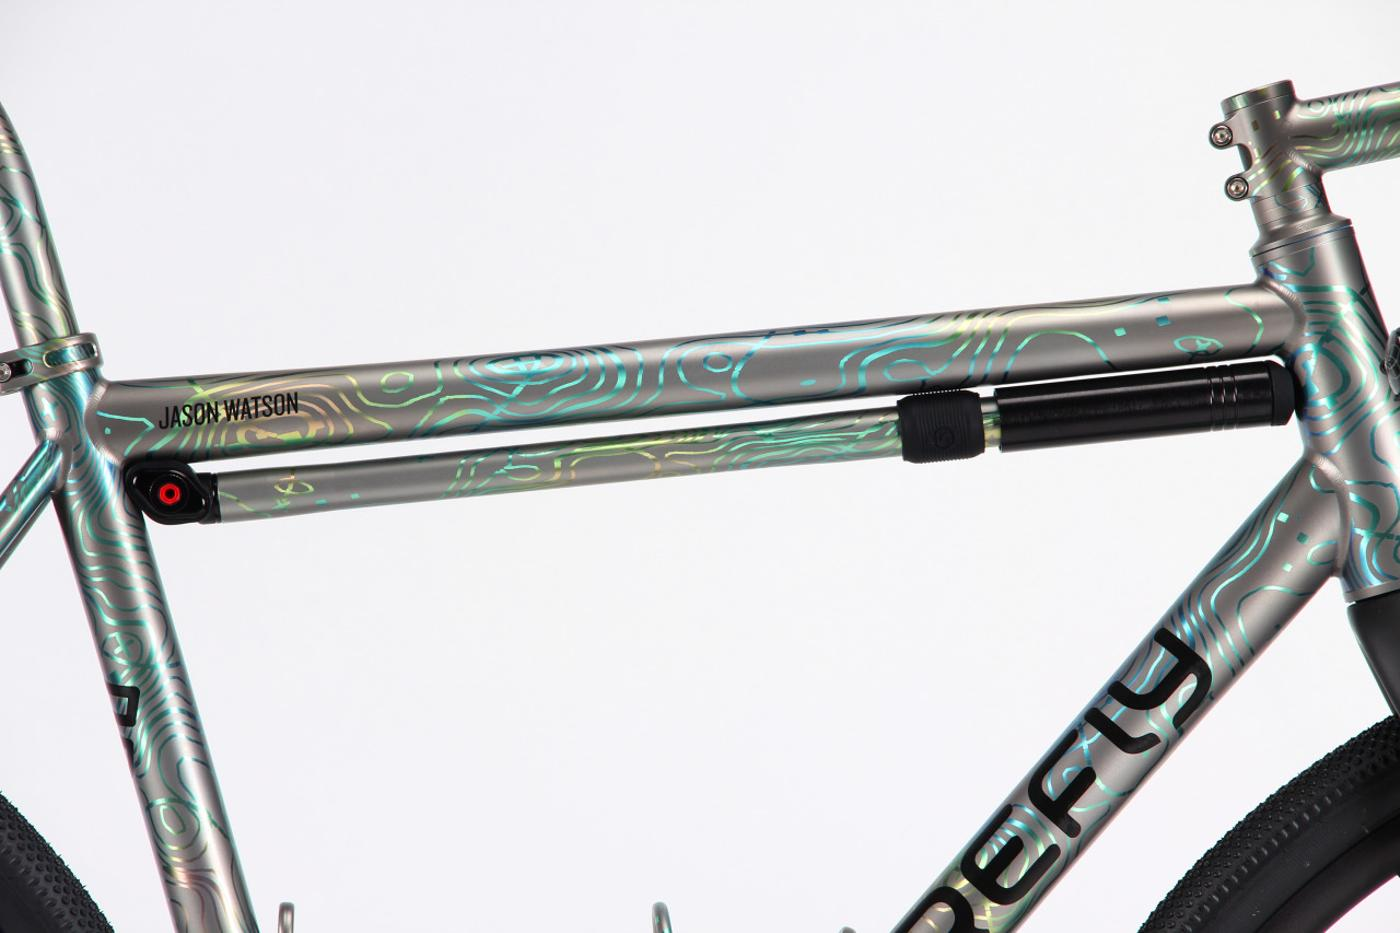 Firefly Bicycles: Topography Anodizing